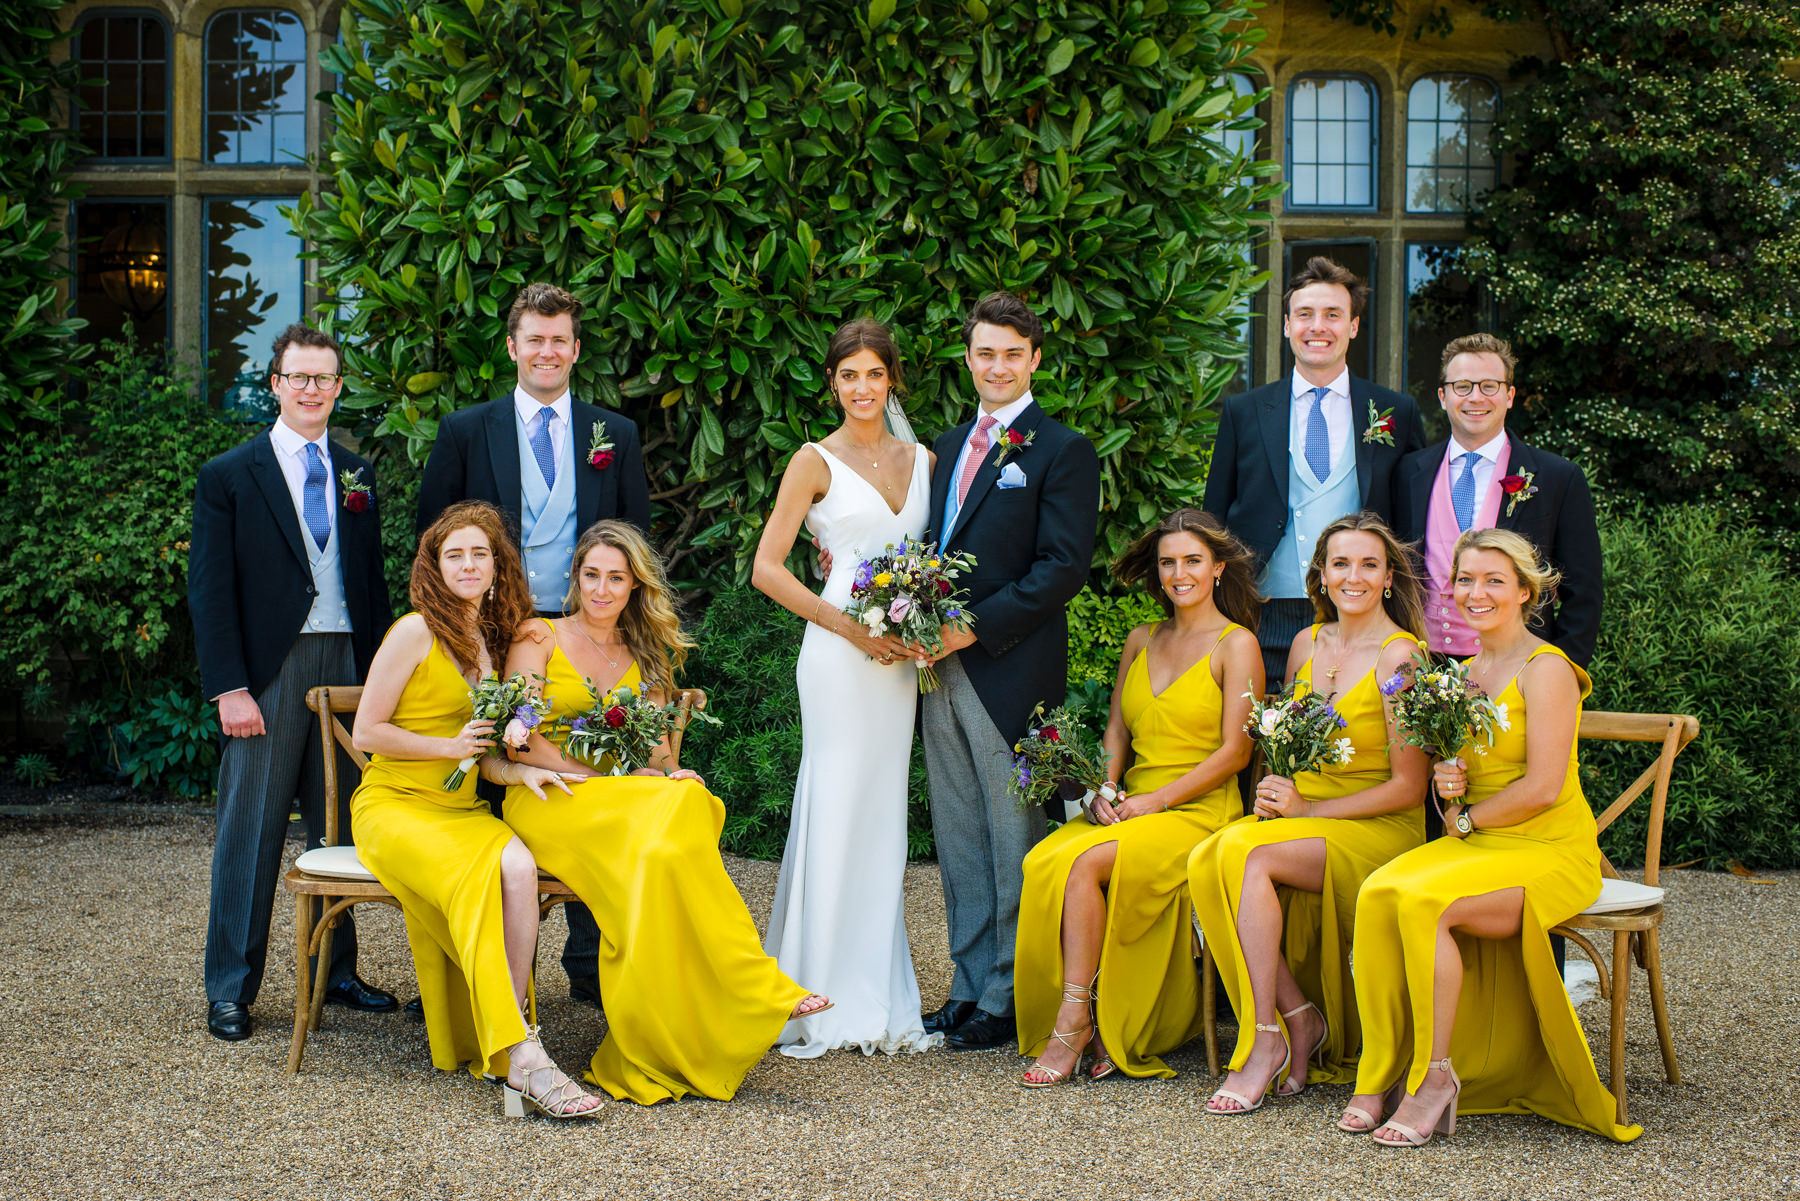 formal wedding photo, yellow bridesmaids dresses